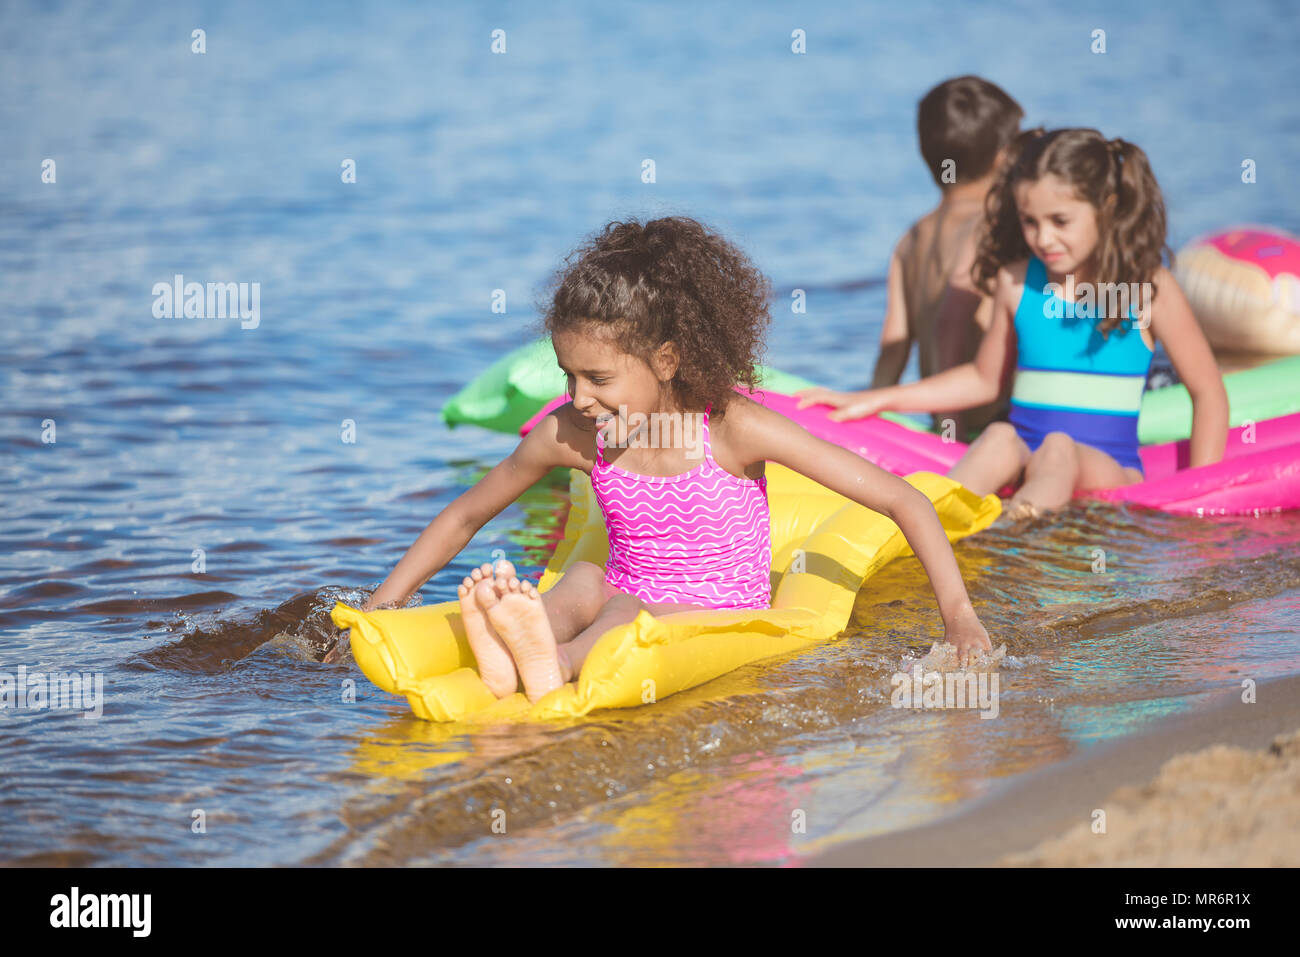 multicultural girls in swimsuits swimming on inflatable mattresses - Stock Image